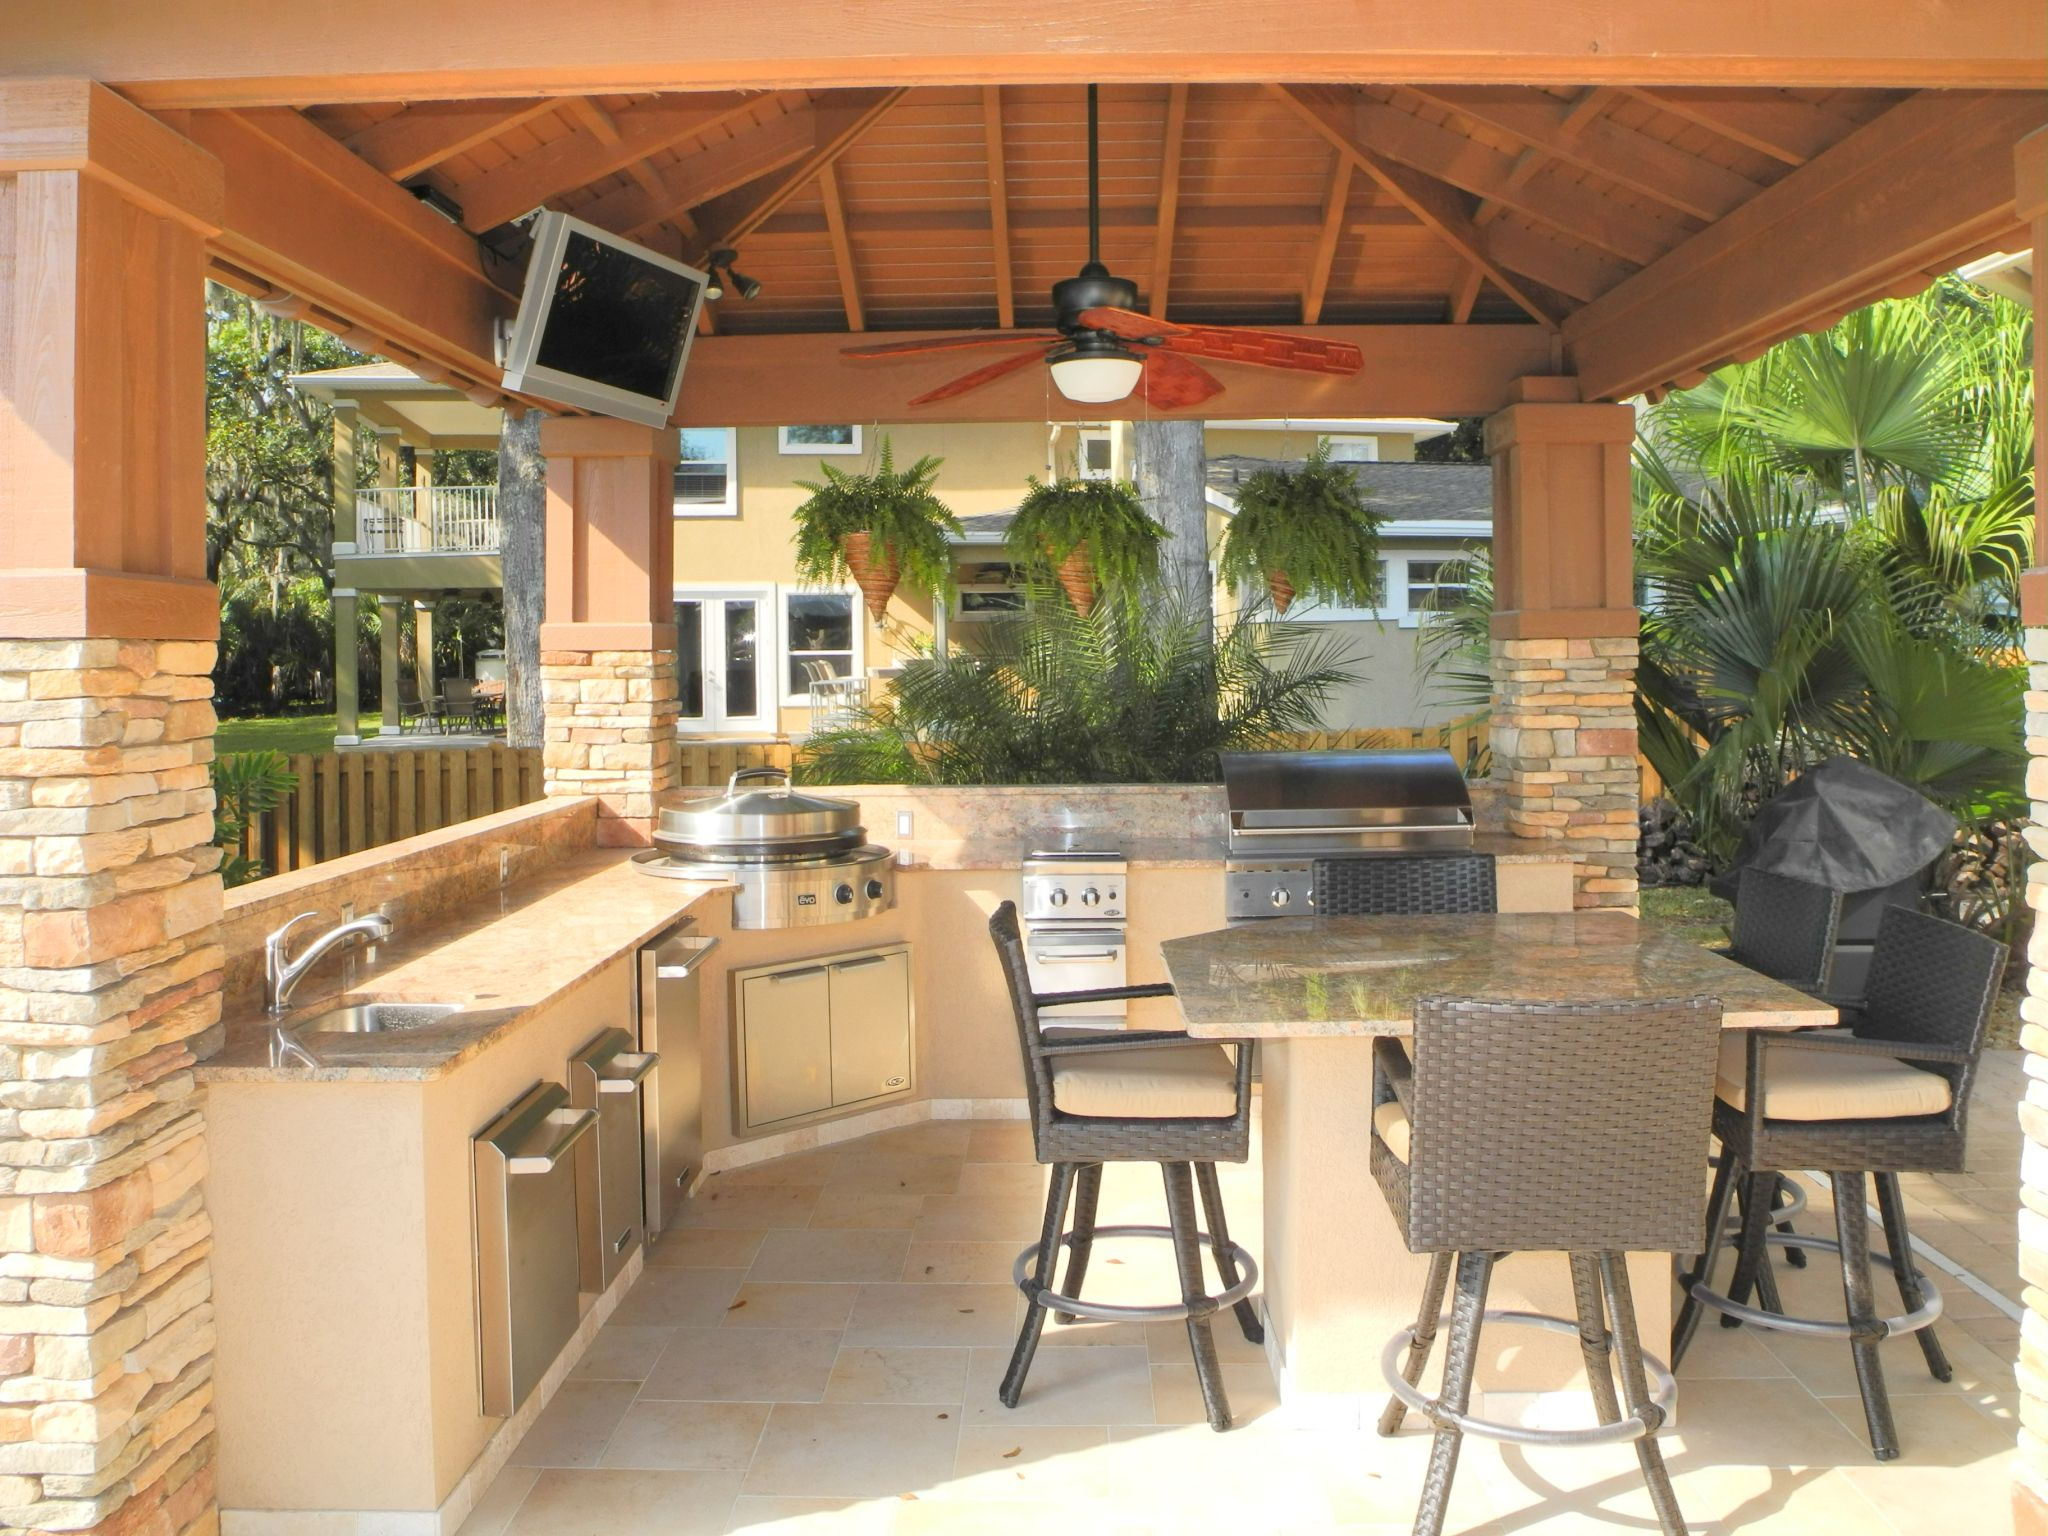 Charmant Outdoor Kitchen Pavilion Designs   Favorite Interior Paint Colors Check  More At Http://